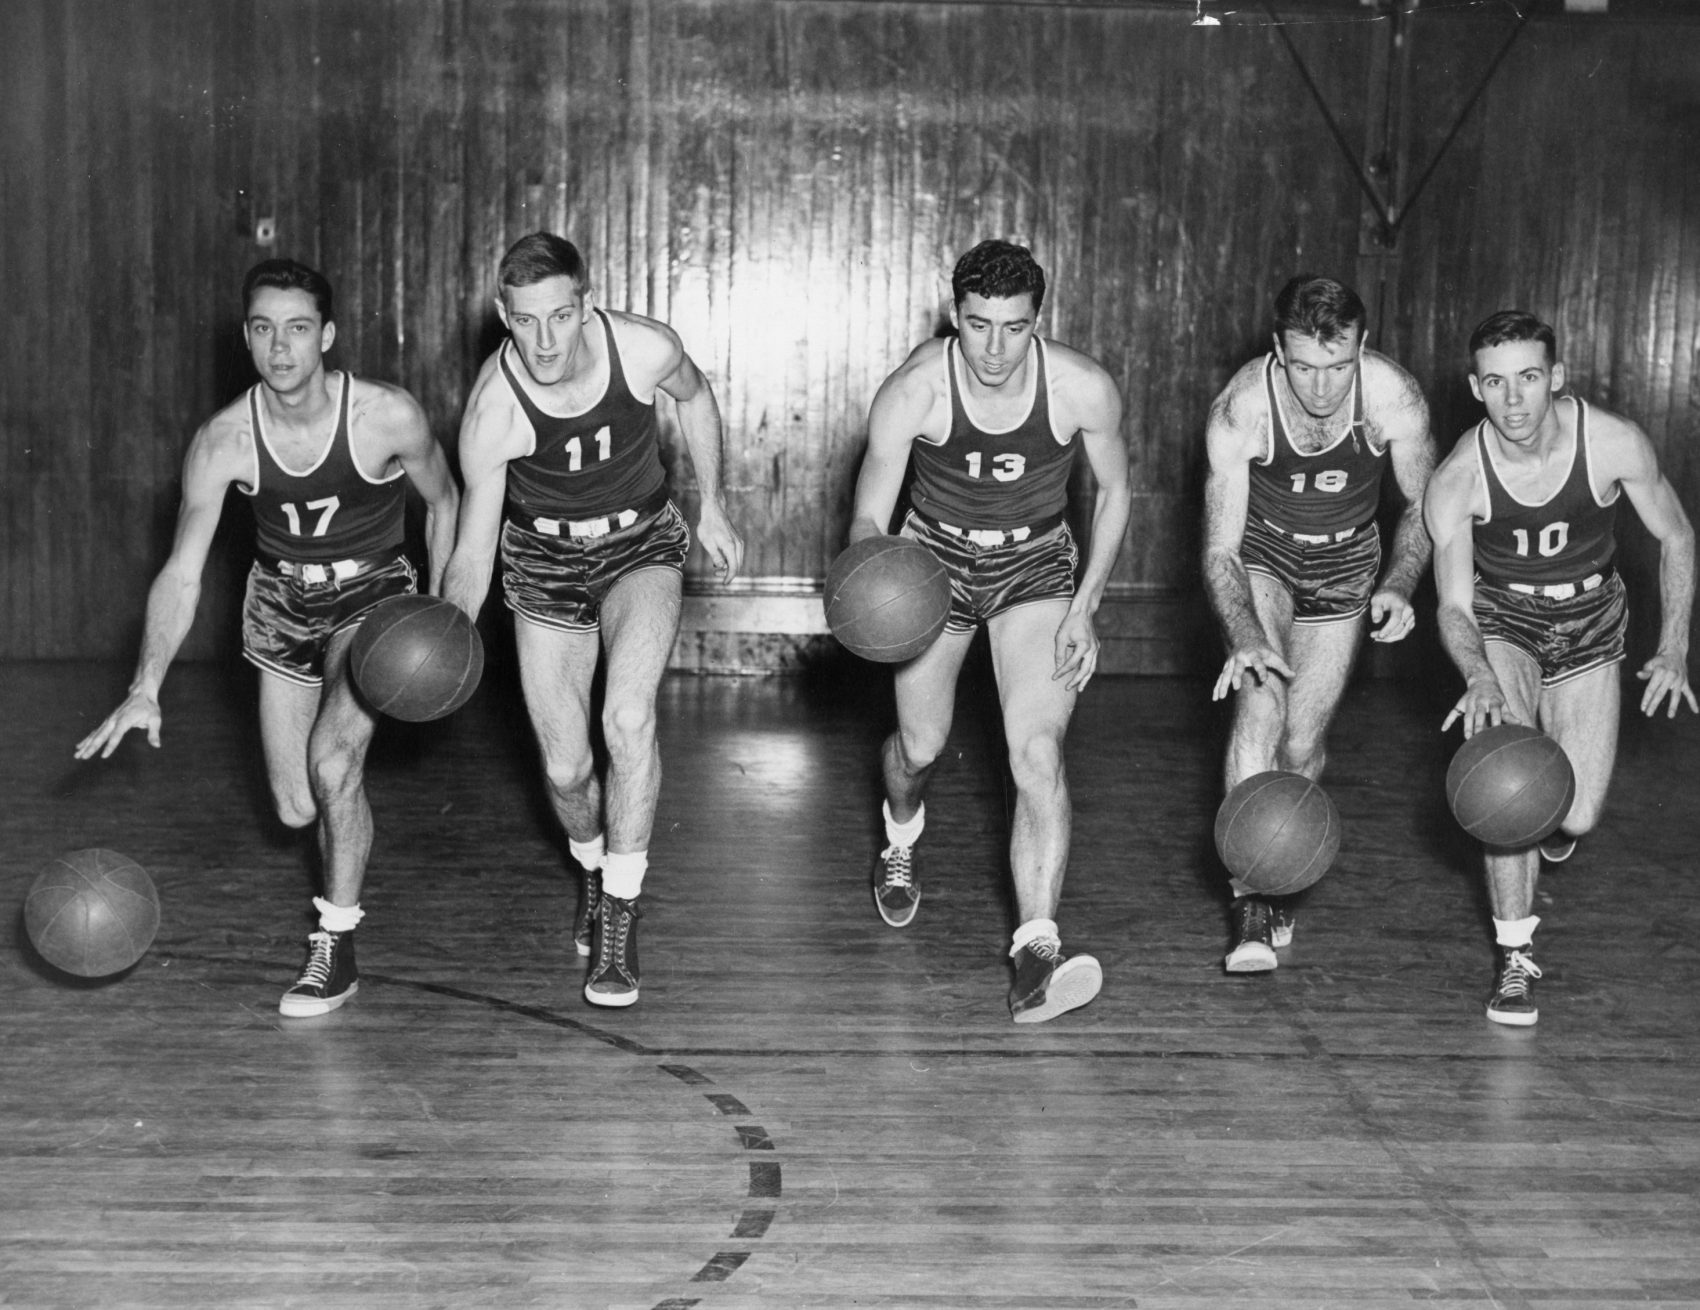 On March 6, 1950, the basketball team at St. Lawrence University took on the NBA's Syracuse Nationals. (From left to right: John Lawrence, Warren Elmslie, John Moro, Bill O'Rourke and Roger Lawrence.) (St. Lawrence University Archives)